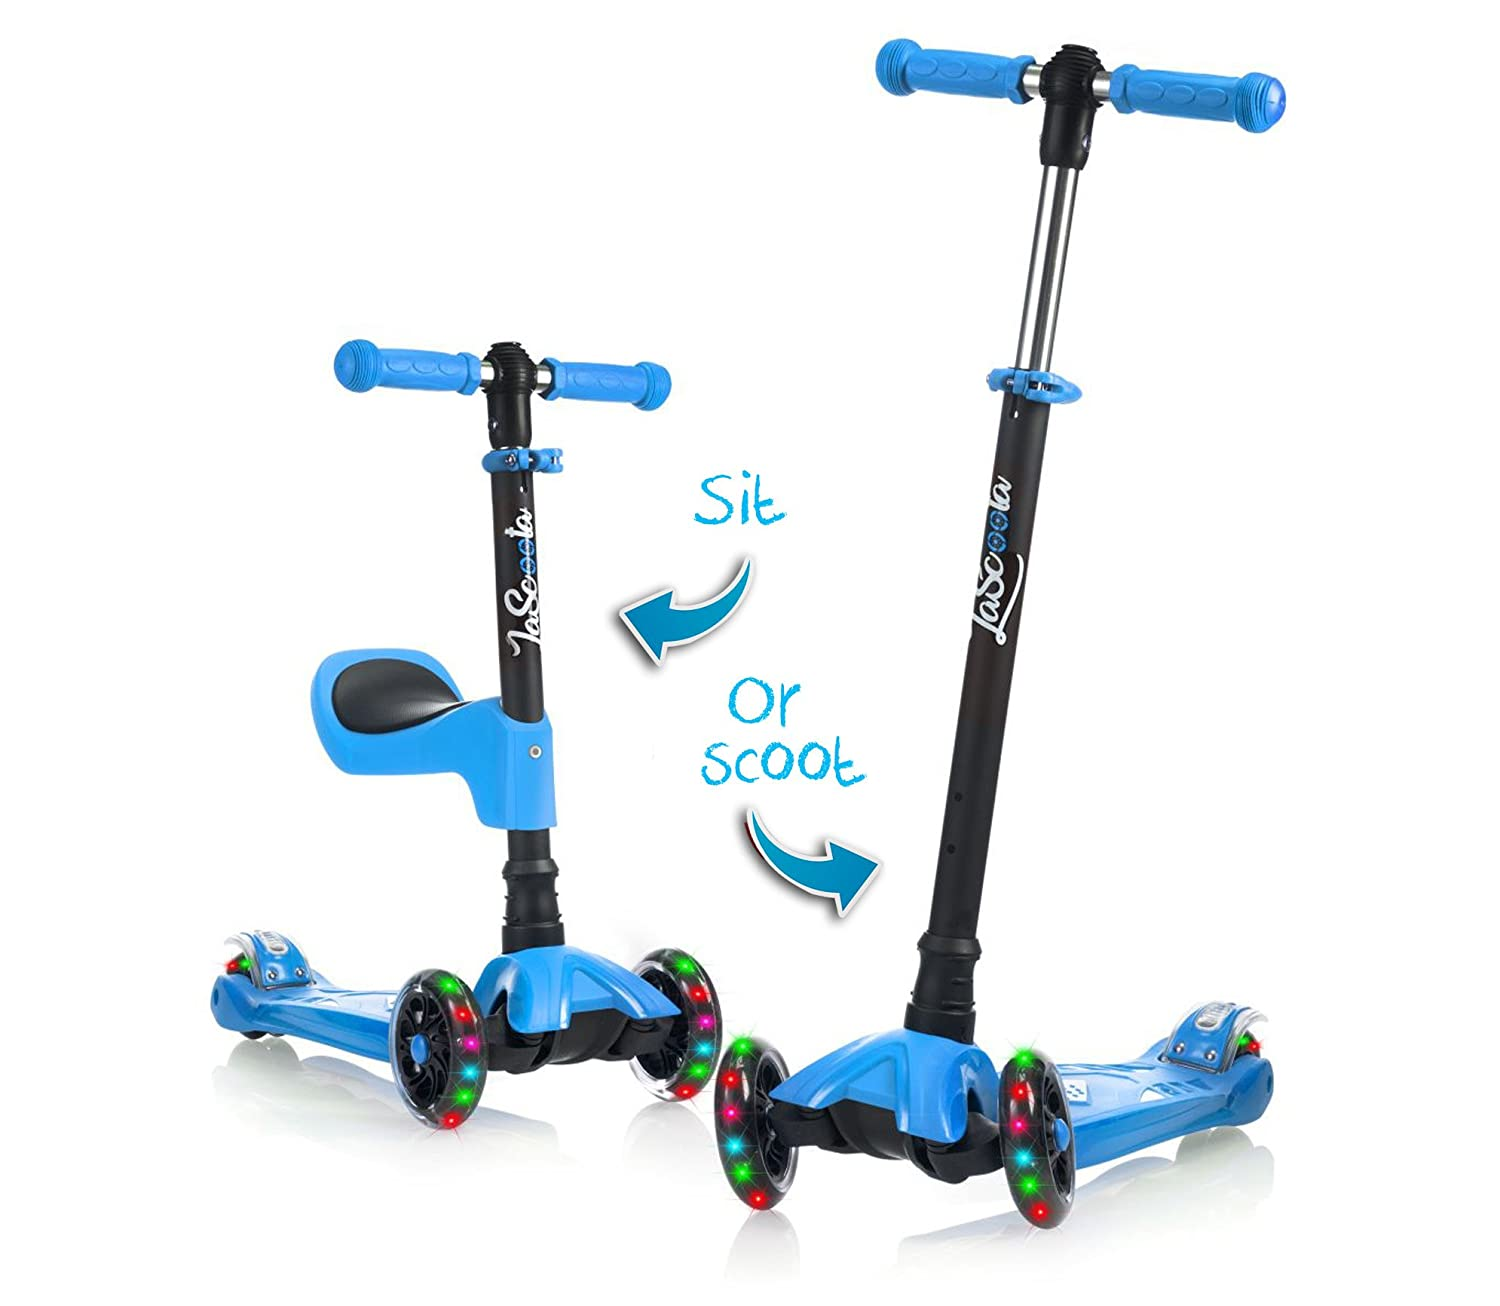 Lascoota 2 in 1 Kick Scooter with Removable Seat Great for Kids Toddlers Girls or Boys – Adjustable Height w Extra Wide Deck PU Flashing Wheels for Children from 2 to 14 Year Old